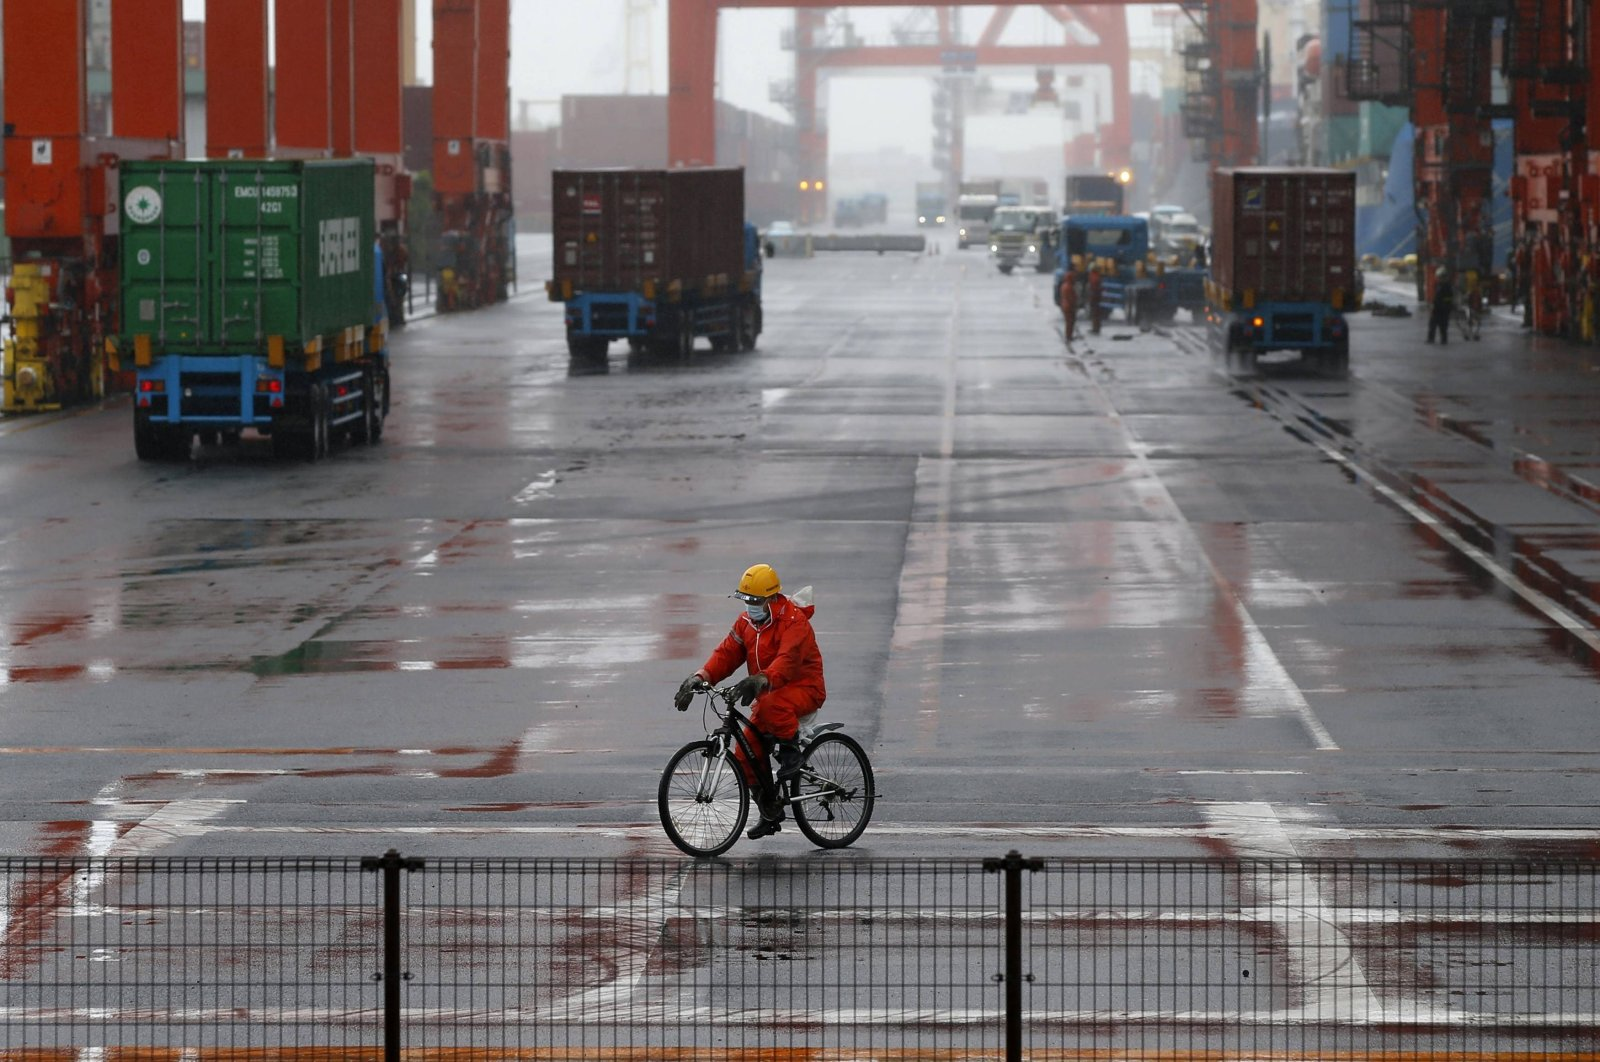 A worker rides a bicycle in a container area at a port in Tokyo, Japan, May 21, 2014. (Reuters Photo)